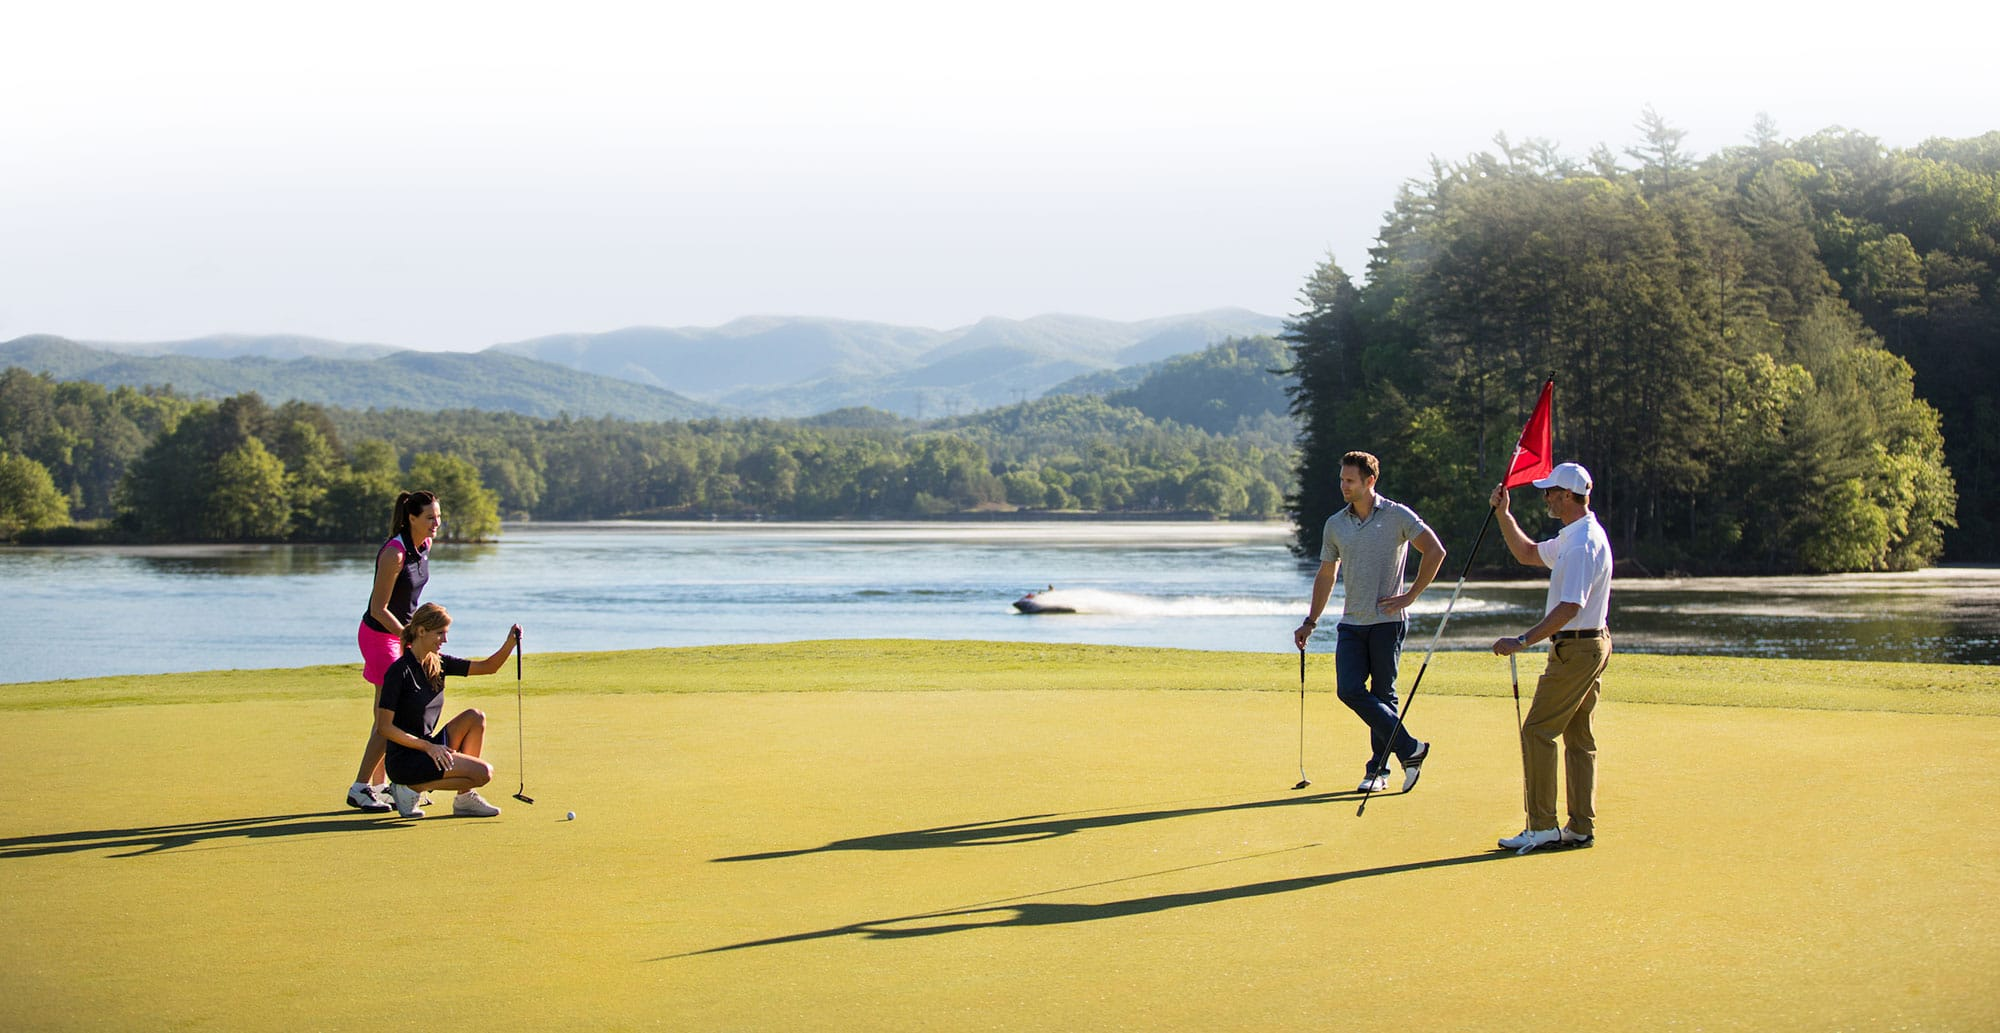 Members playing golf at Keowee Vineyards